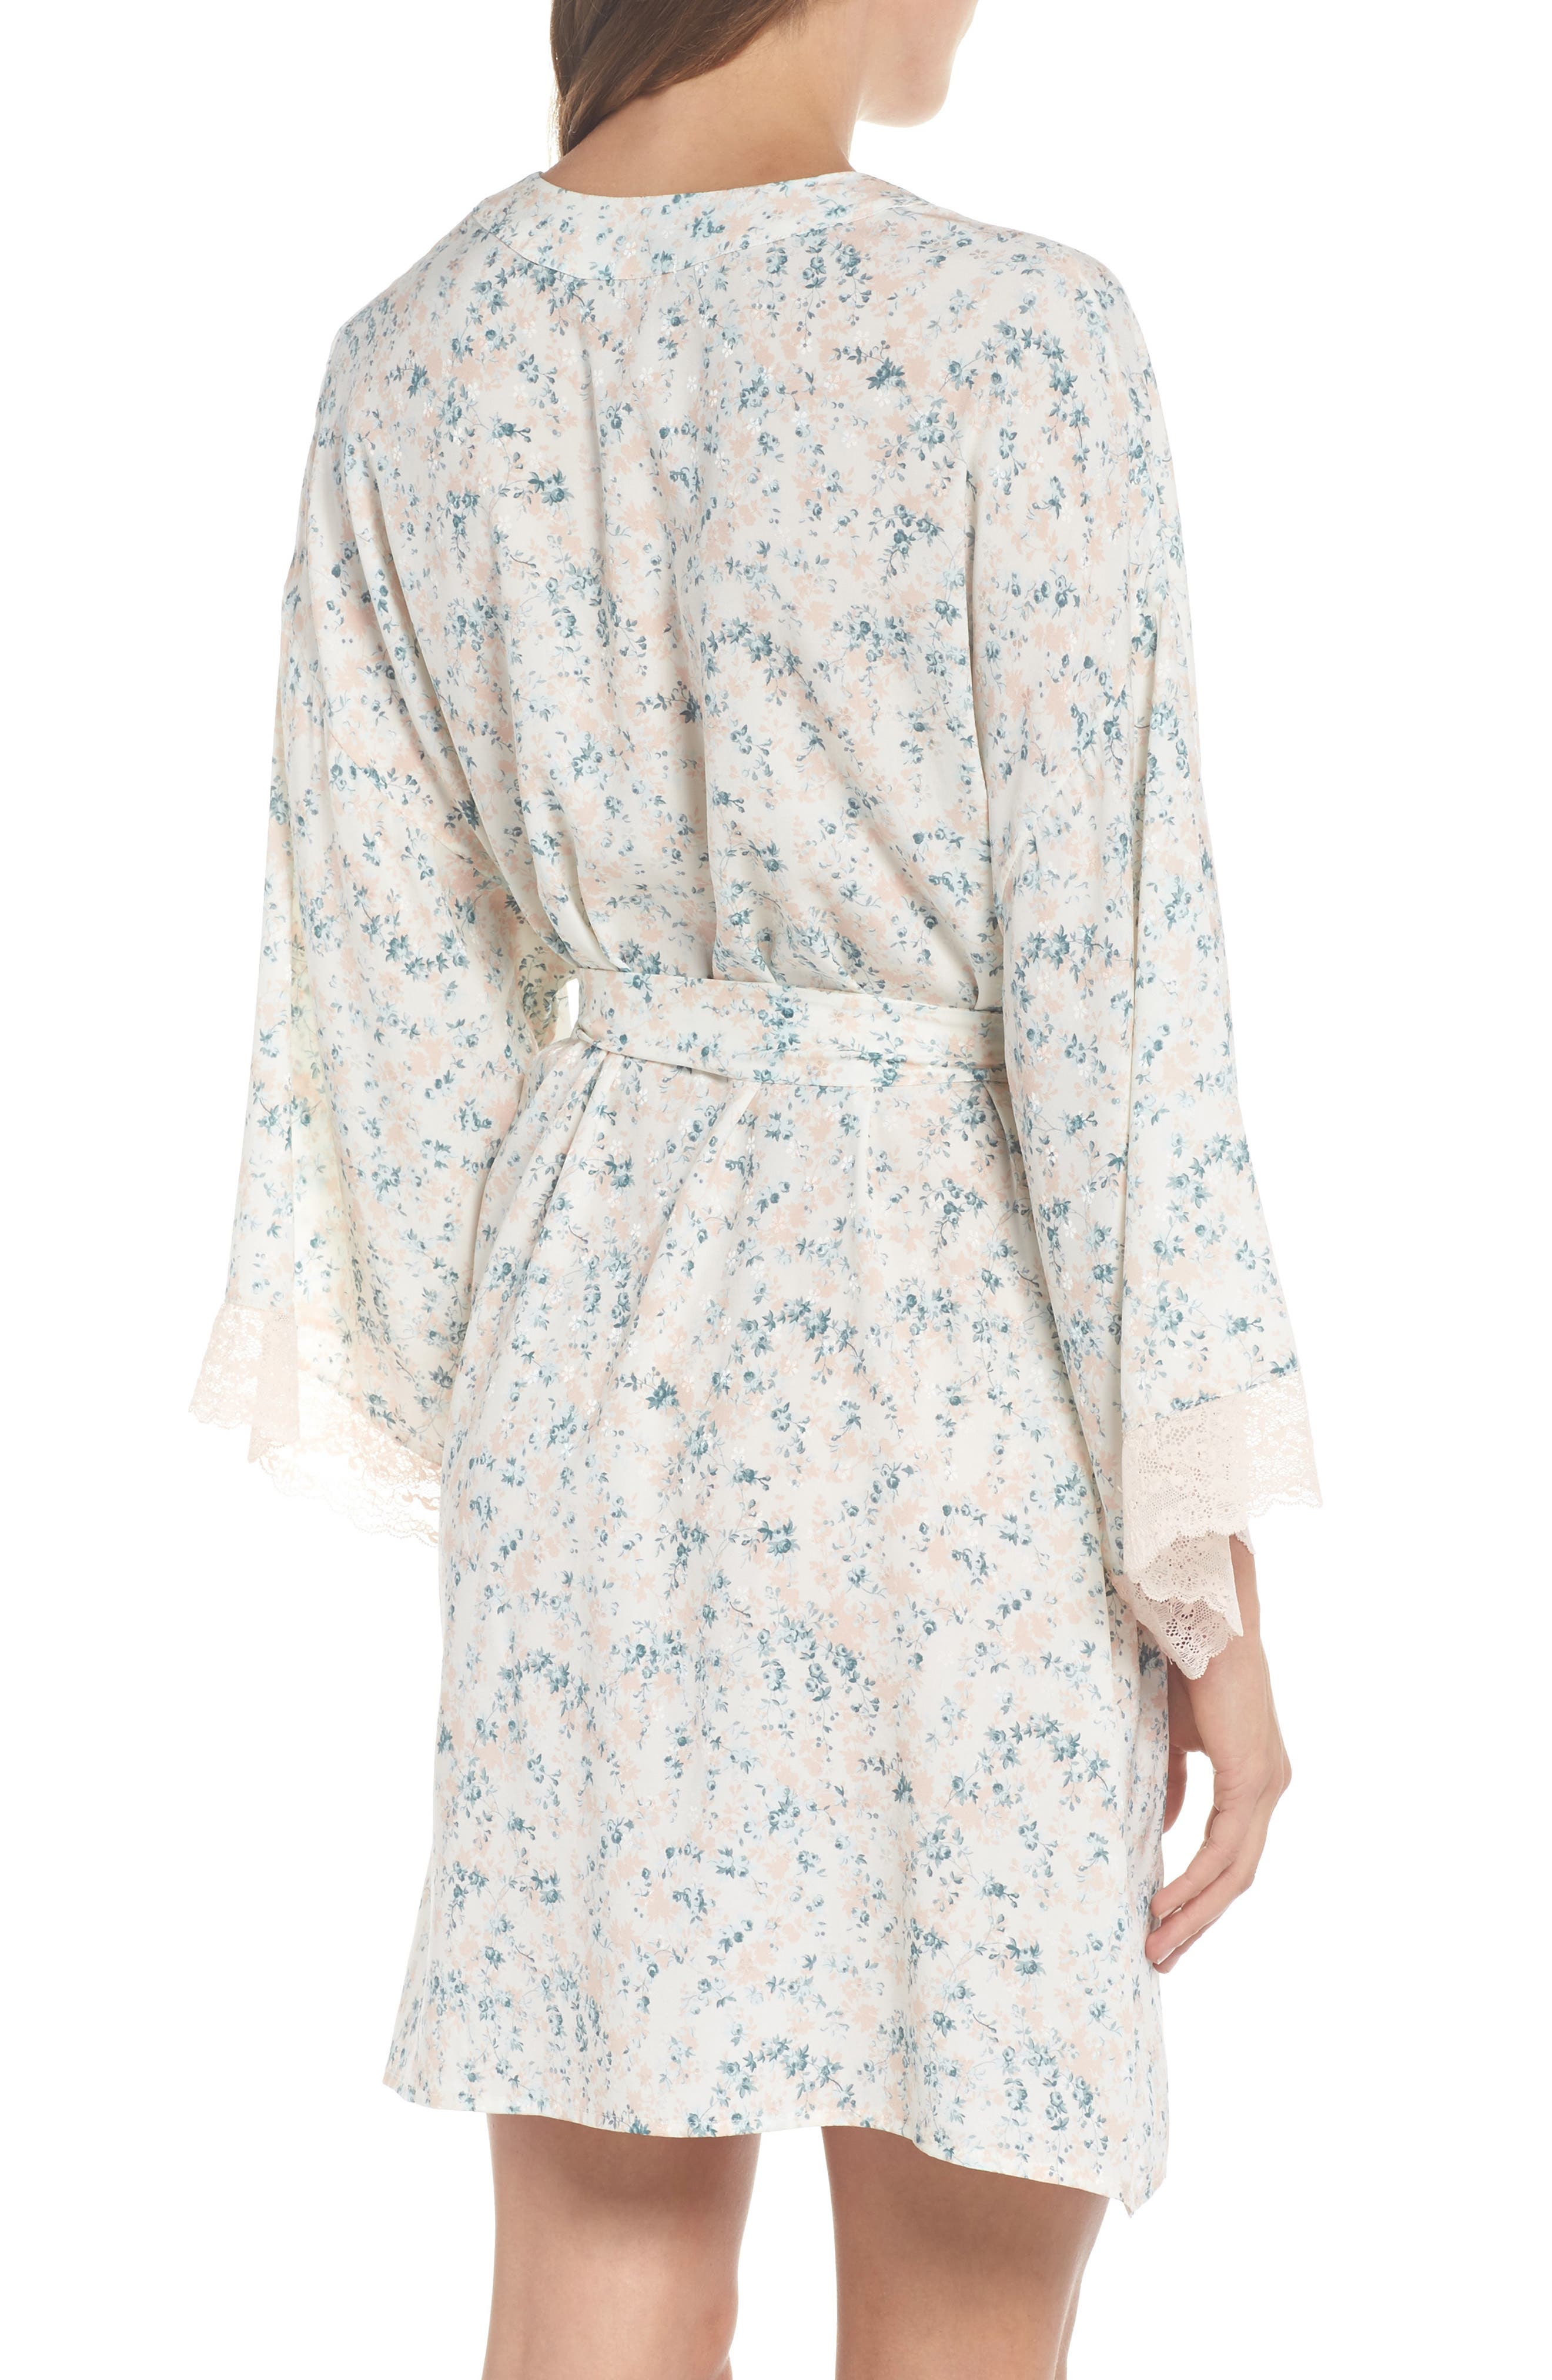 Lily Stretch Silk Short Robe,                             Alternate thumbnail 2, color,                             Ivory Floral Print